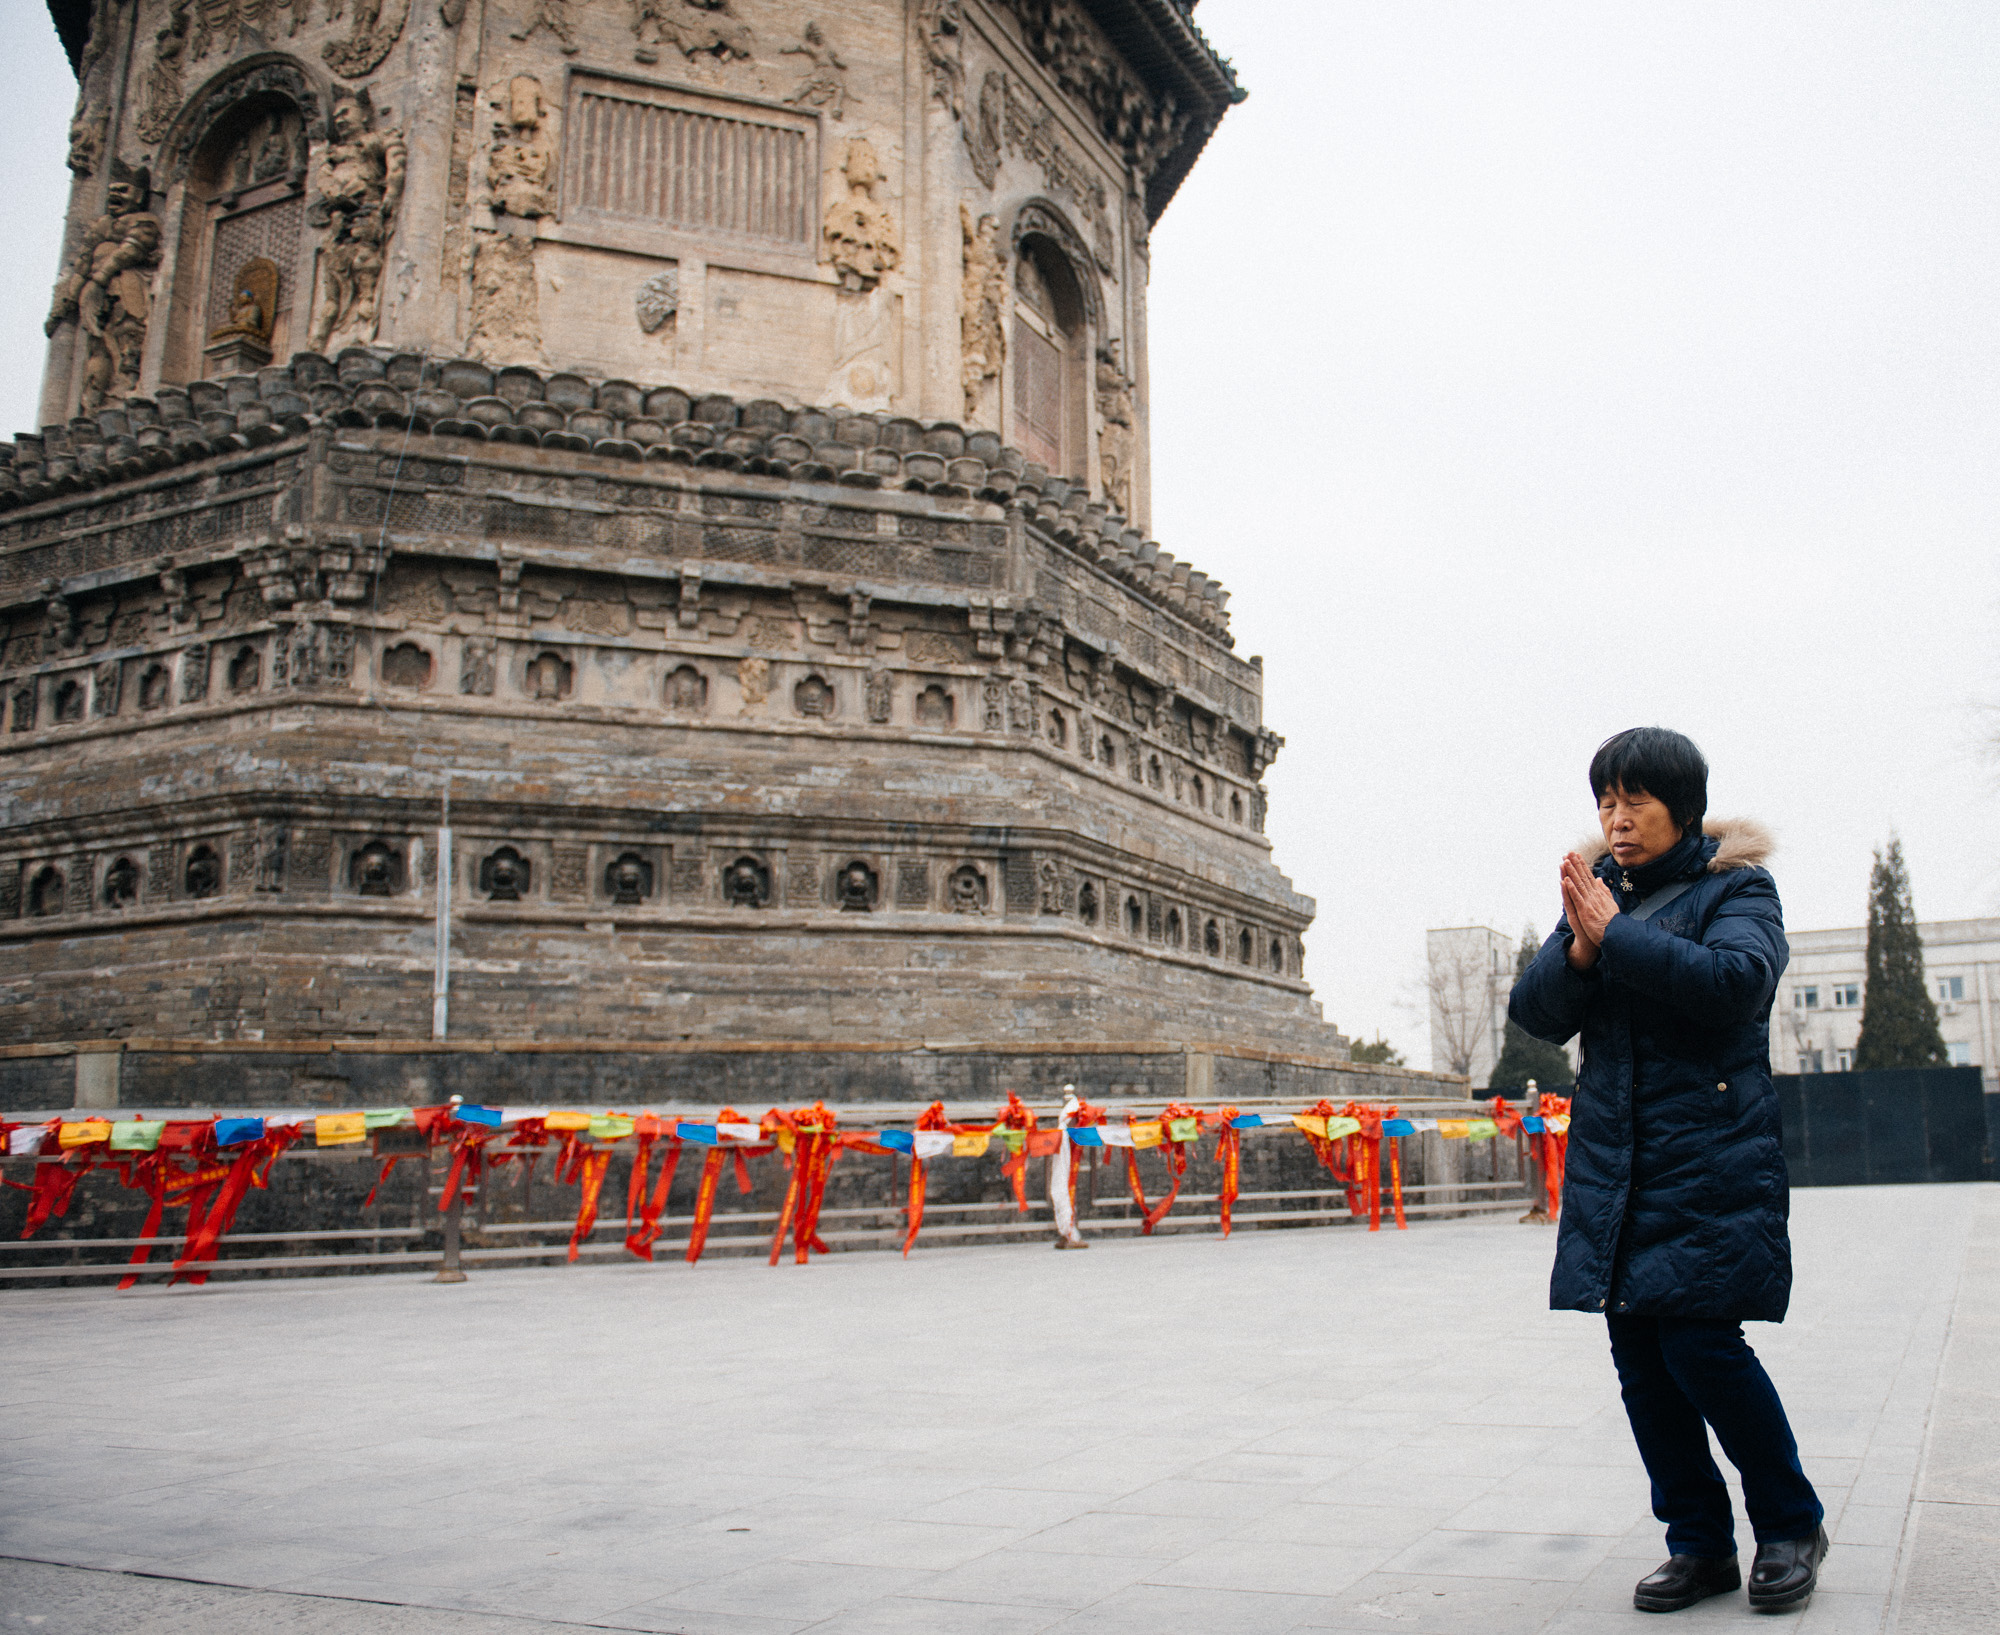 I observed many people would walk around the pagoda clockwise, while praying. Several would just walk while whispering, some would stop in front of each door and bow, and others would just be quiet in their worship.